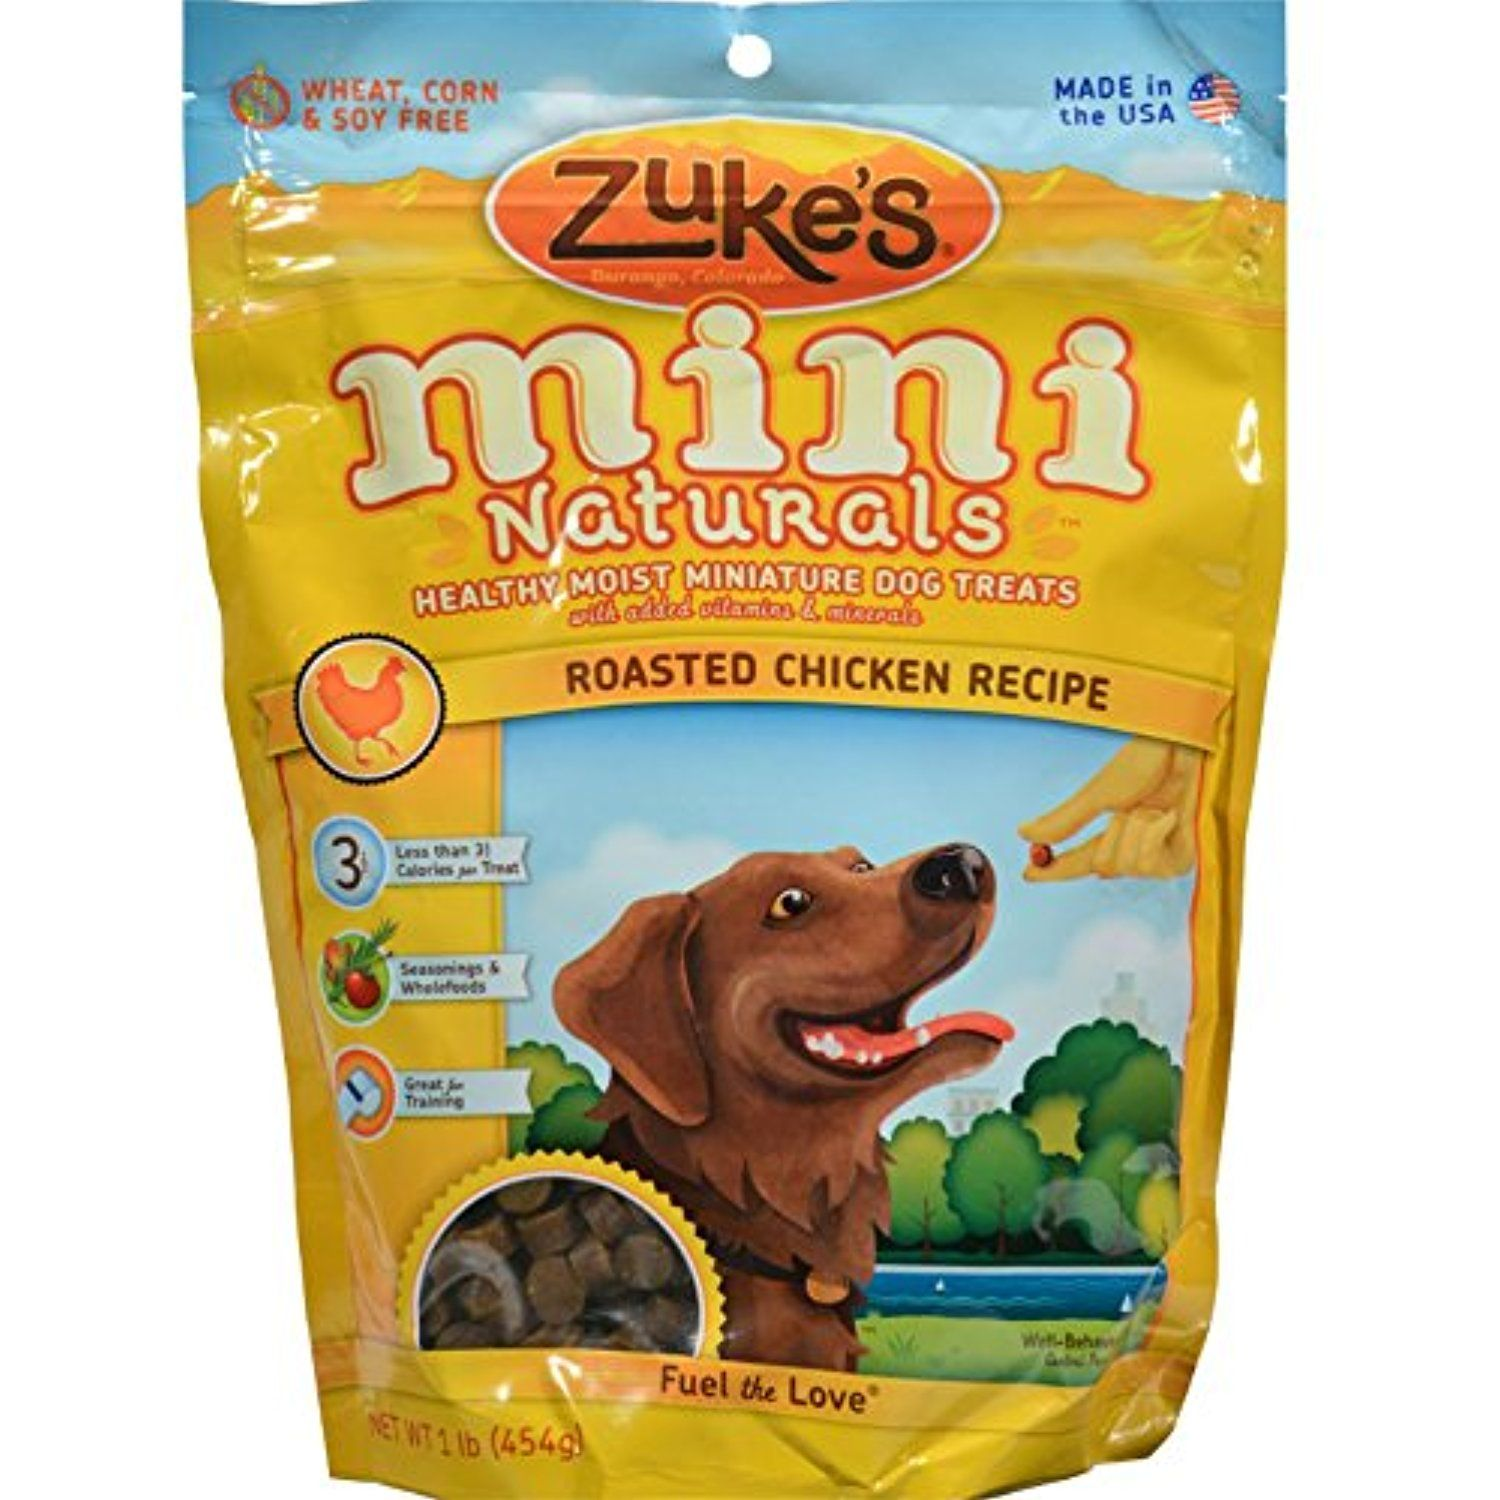 Zukes 1 Lb Mini Naturals Roasted Chicken (Pack of 2) You